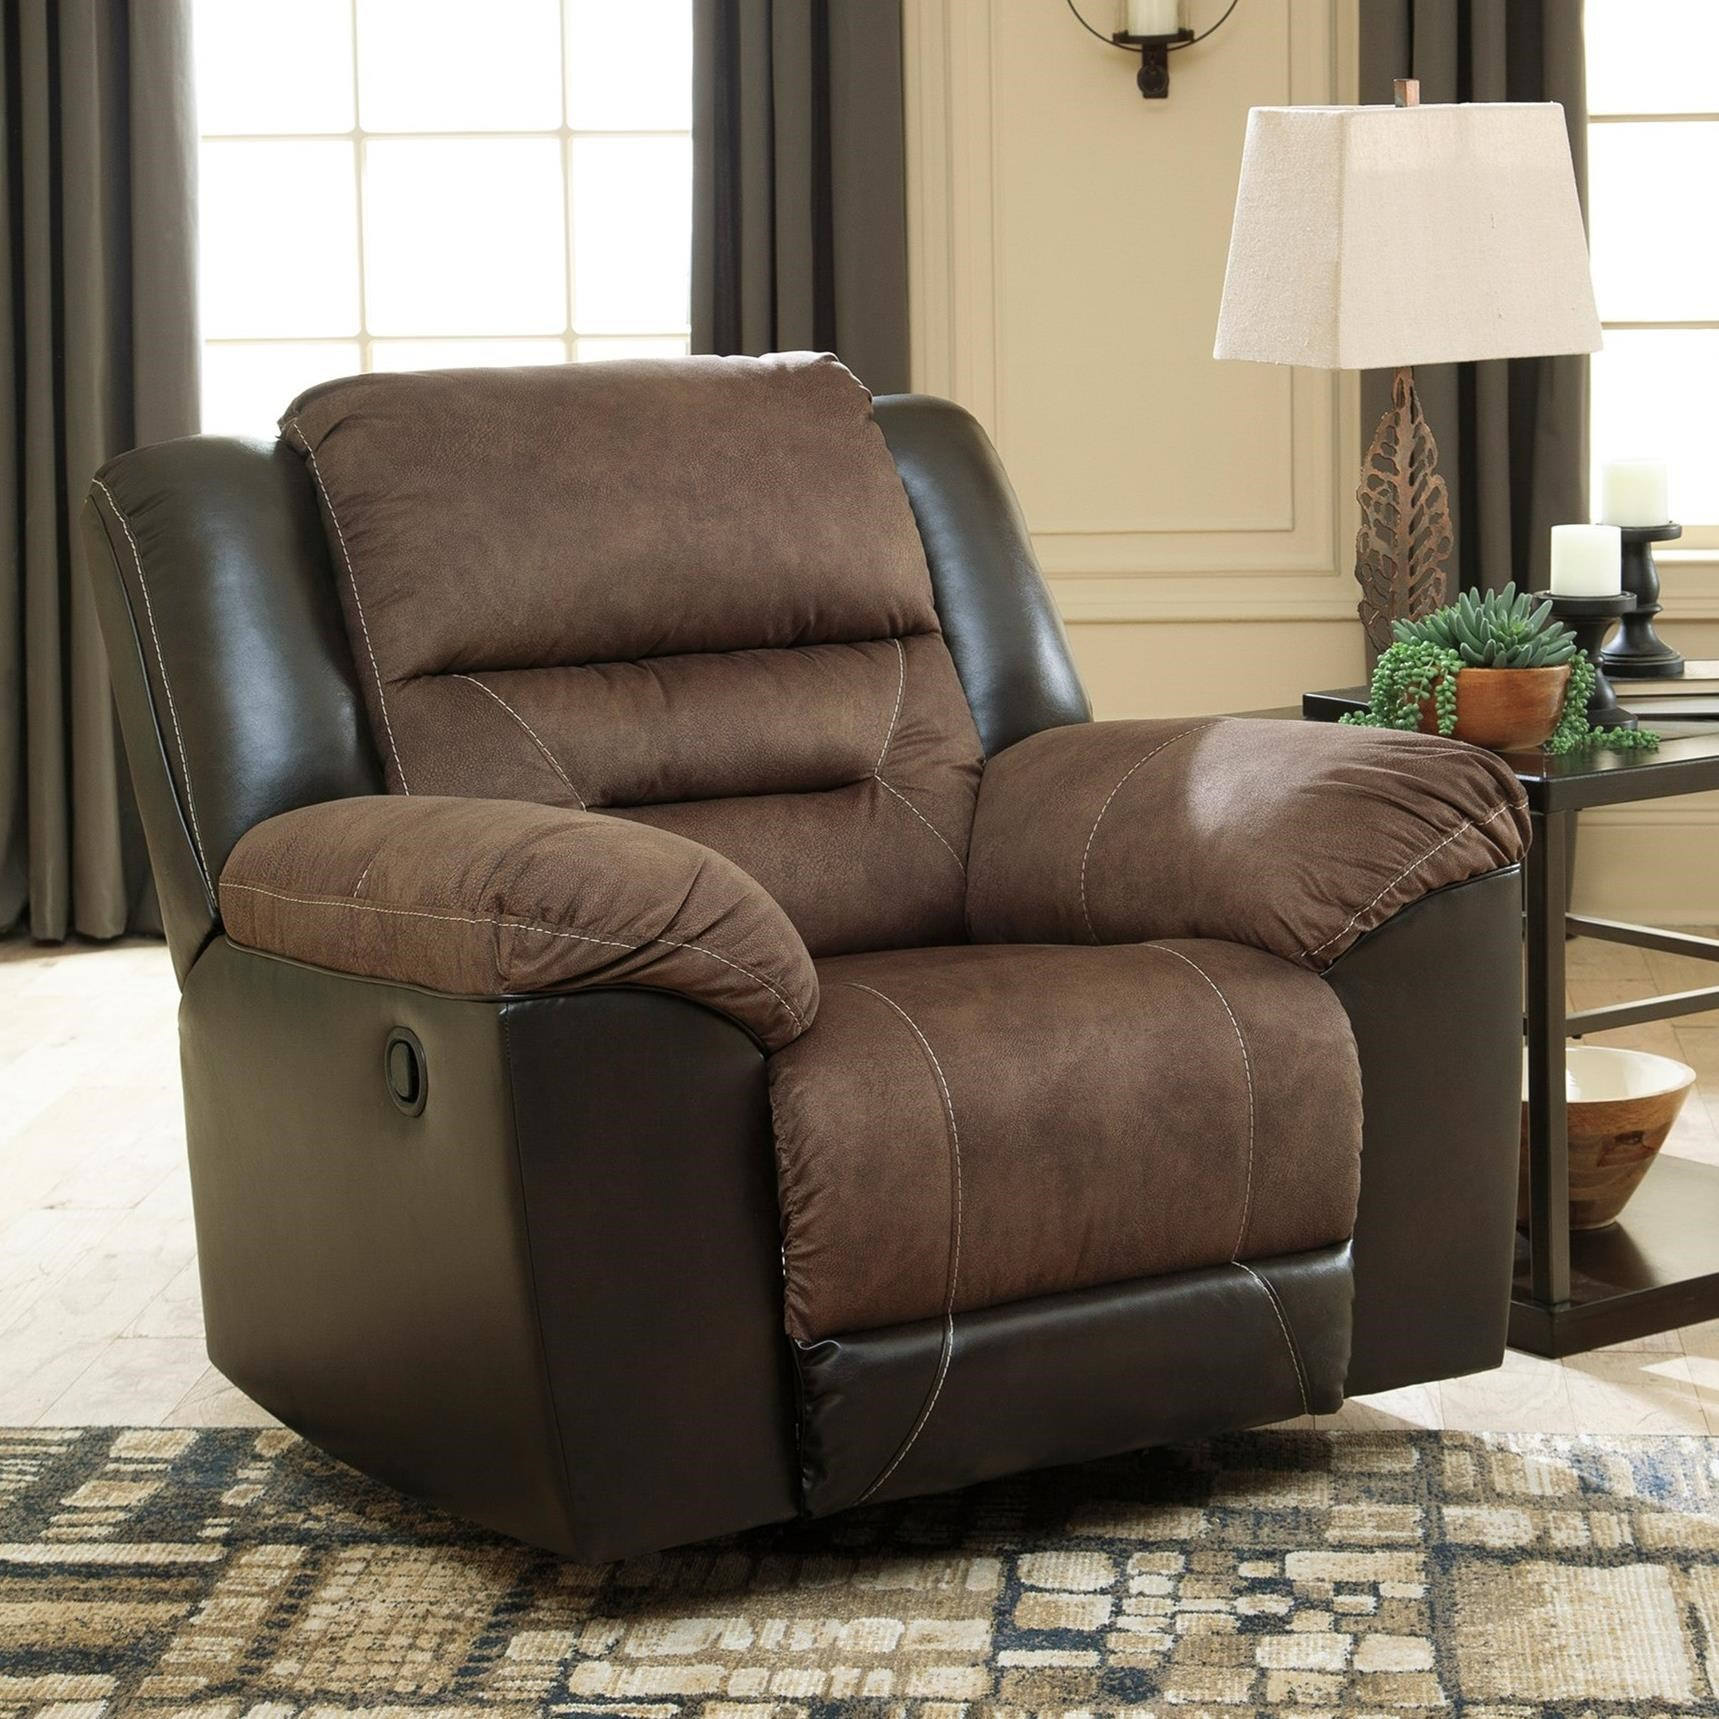 StyleLine DALLAS 2910125 Casual Rocker Recliner With